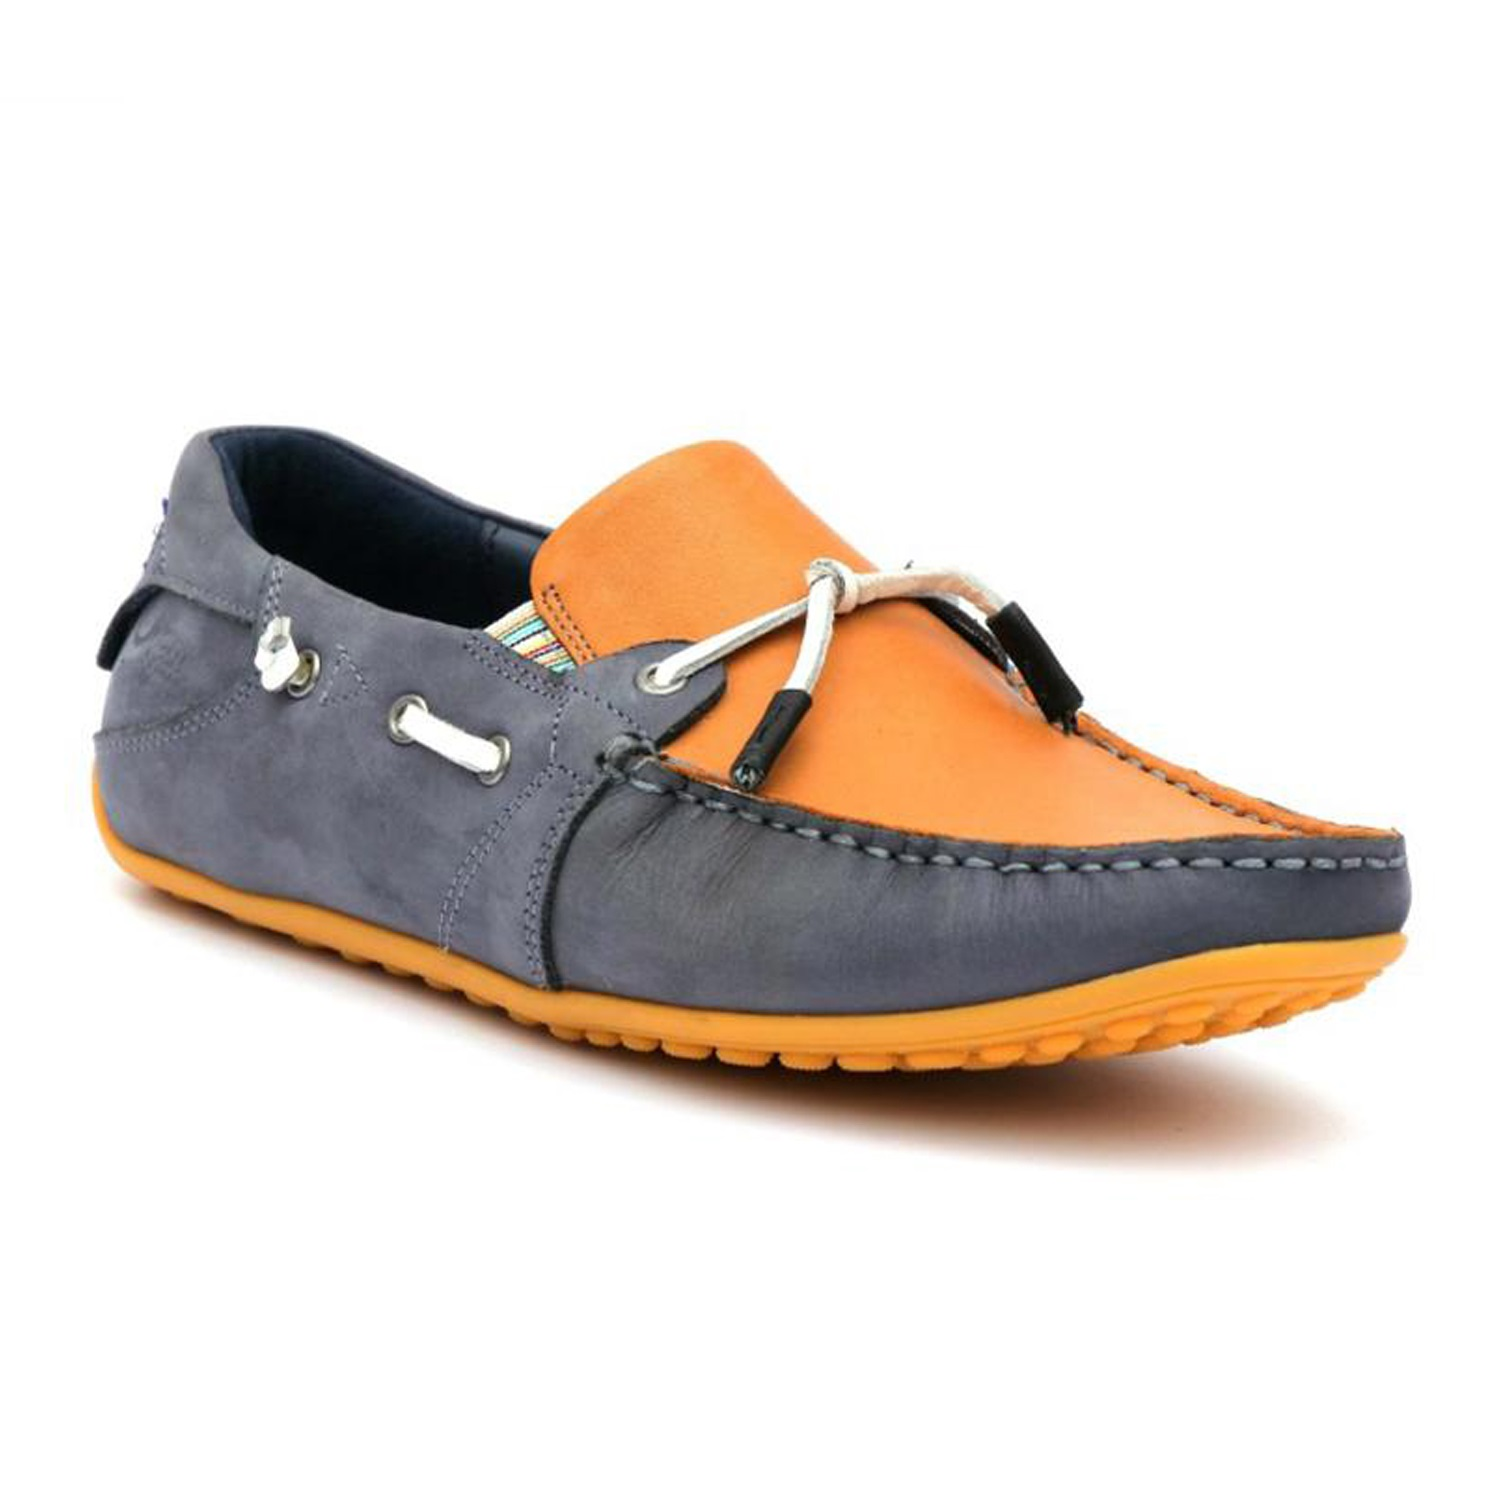 Hitz | Hitz Blue Genuine Leather Casual Loafers with Slip-On Fastening